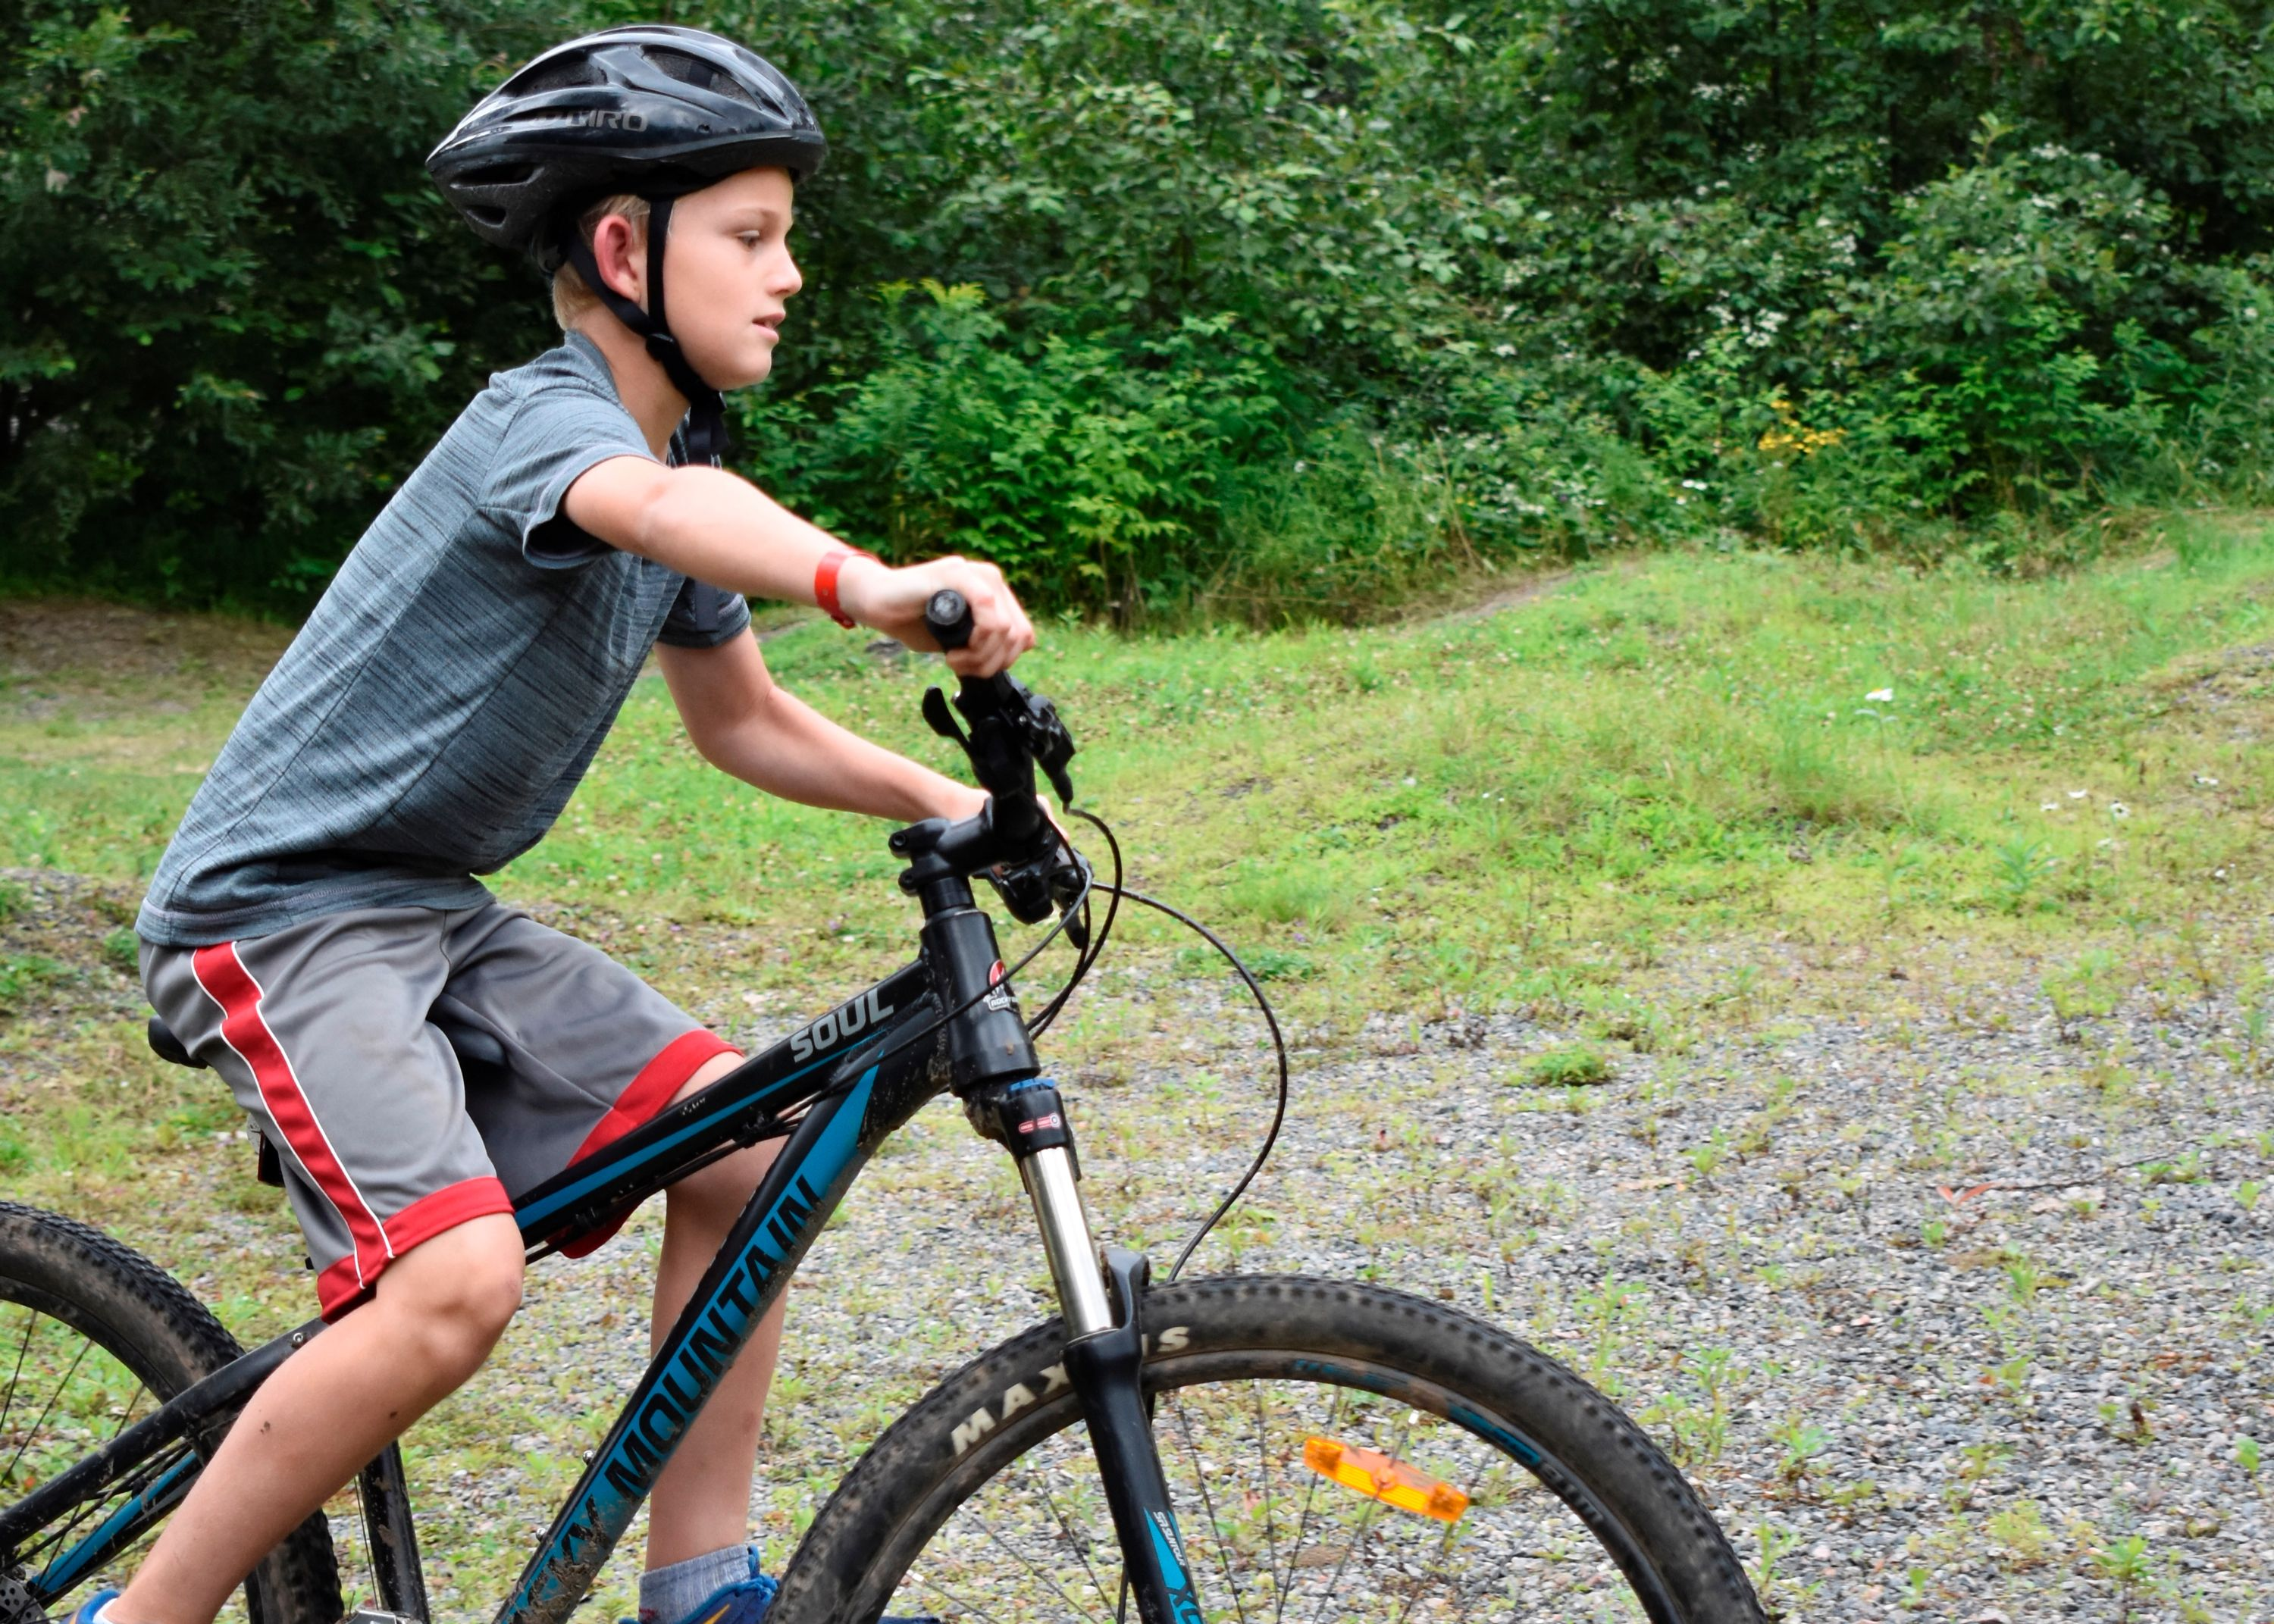 camper mountain biking at christian adventure Summer Camp in Haliburton, Ontario